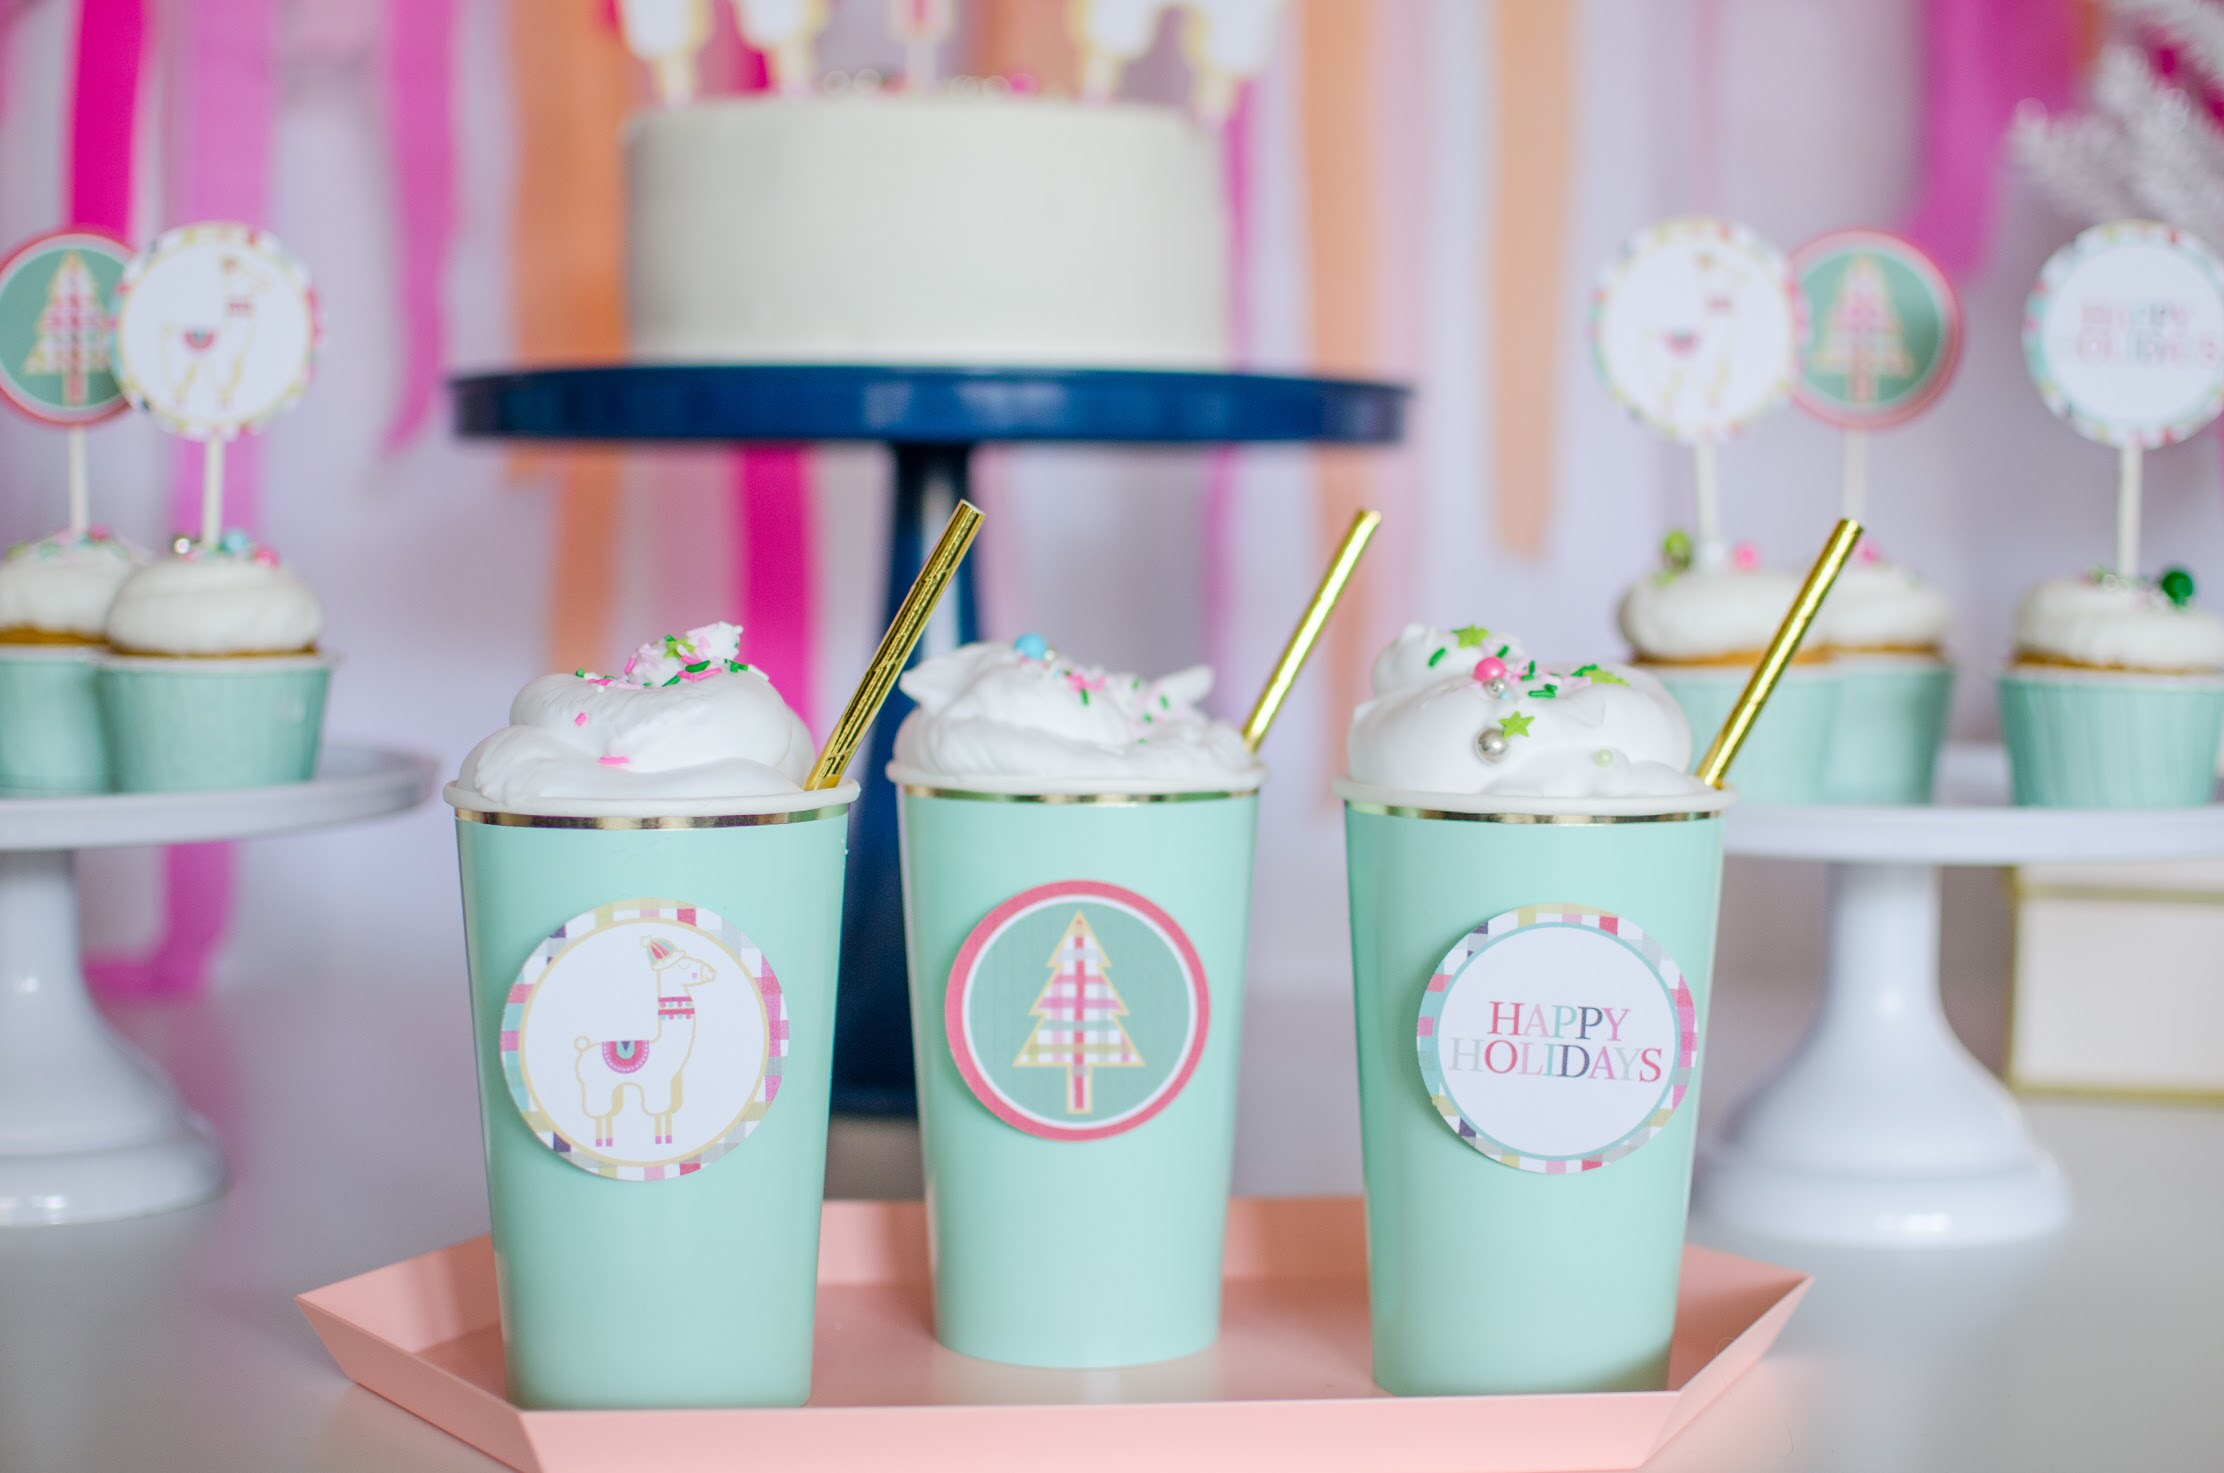 Download these free llama party printables that can be used for cupcake toppers and even drink embellishments at www.minteventdesign.com #holidayparty #holidays #partyideas #christmasparty #holidaypartyideas #llamaparty #llamalove #partyprintables